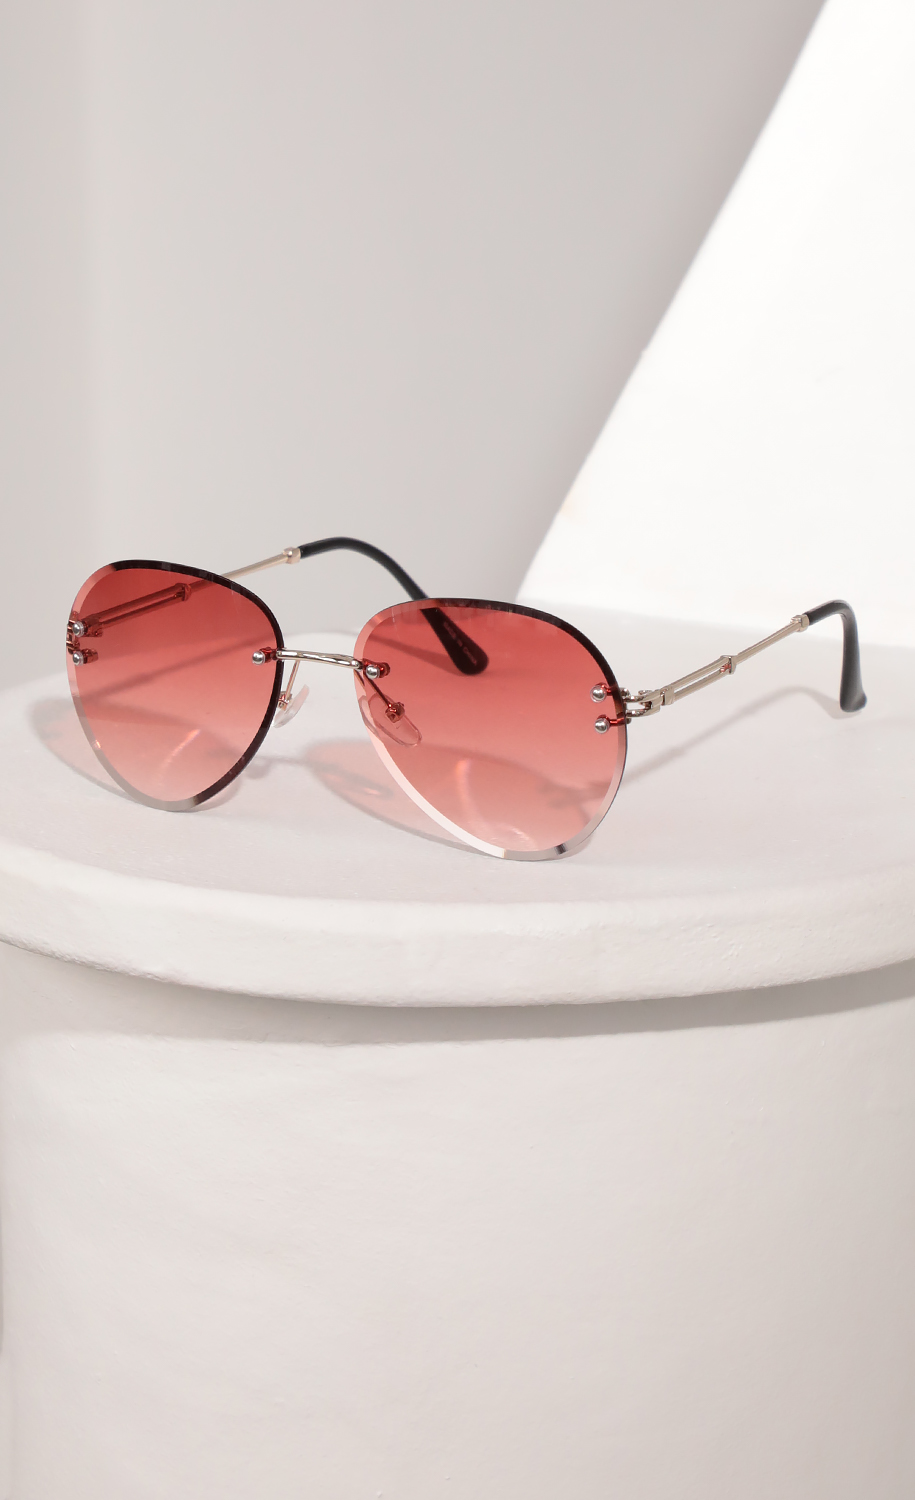 Rimless Aviator-Inspired Sunglasses in Coral